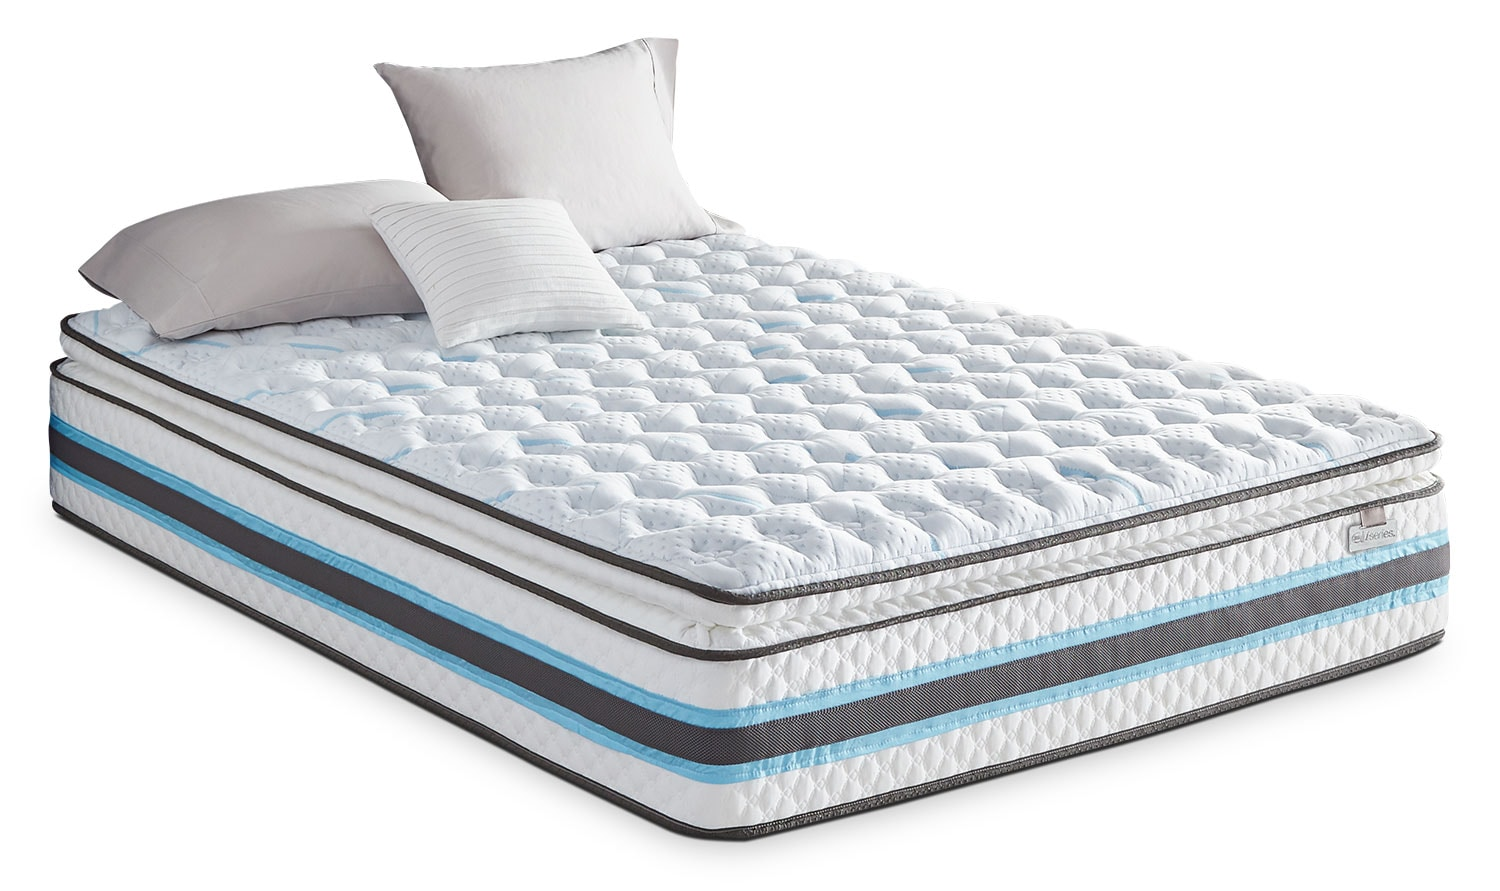 Serta iSeries® Breathtaking Pillow-Top Firm Queen Mattress